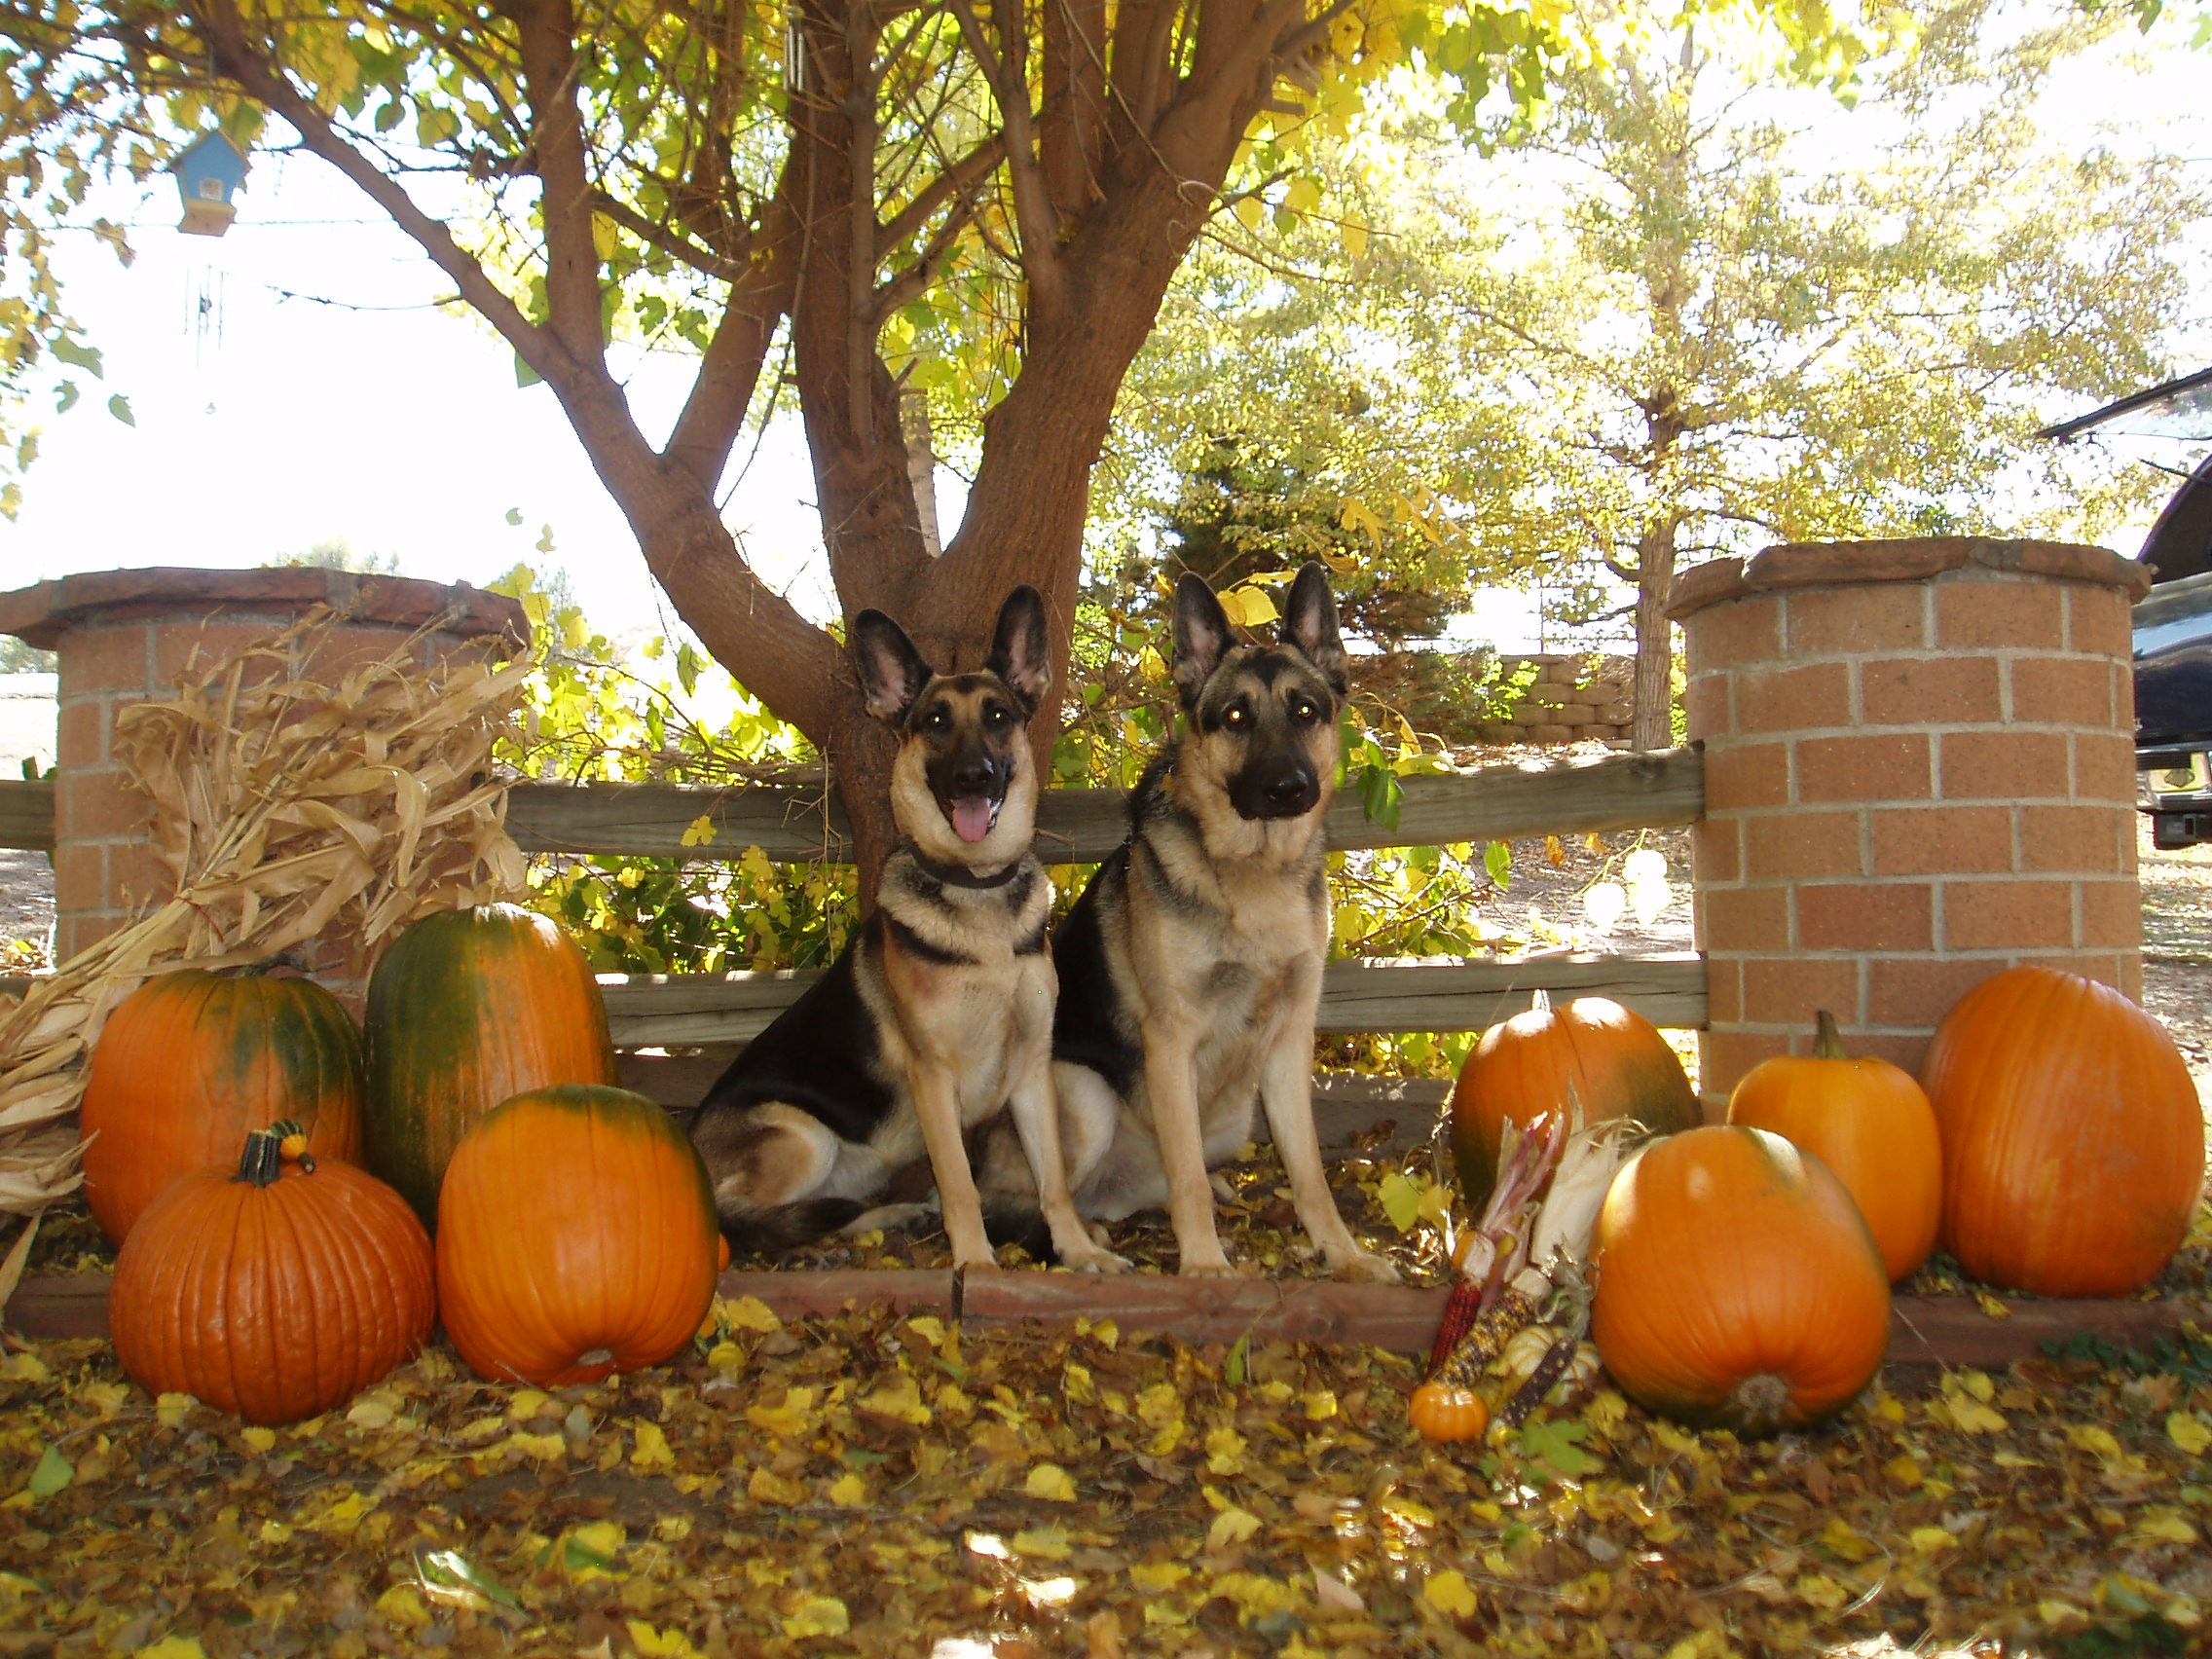 Dogs next to tree and pumpkins